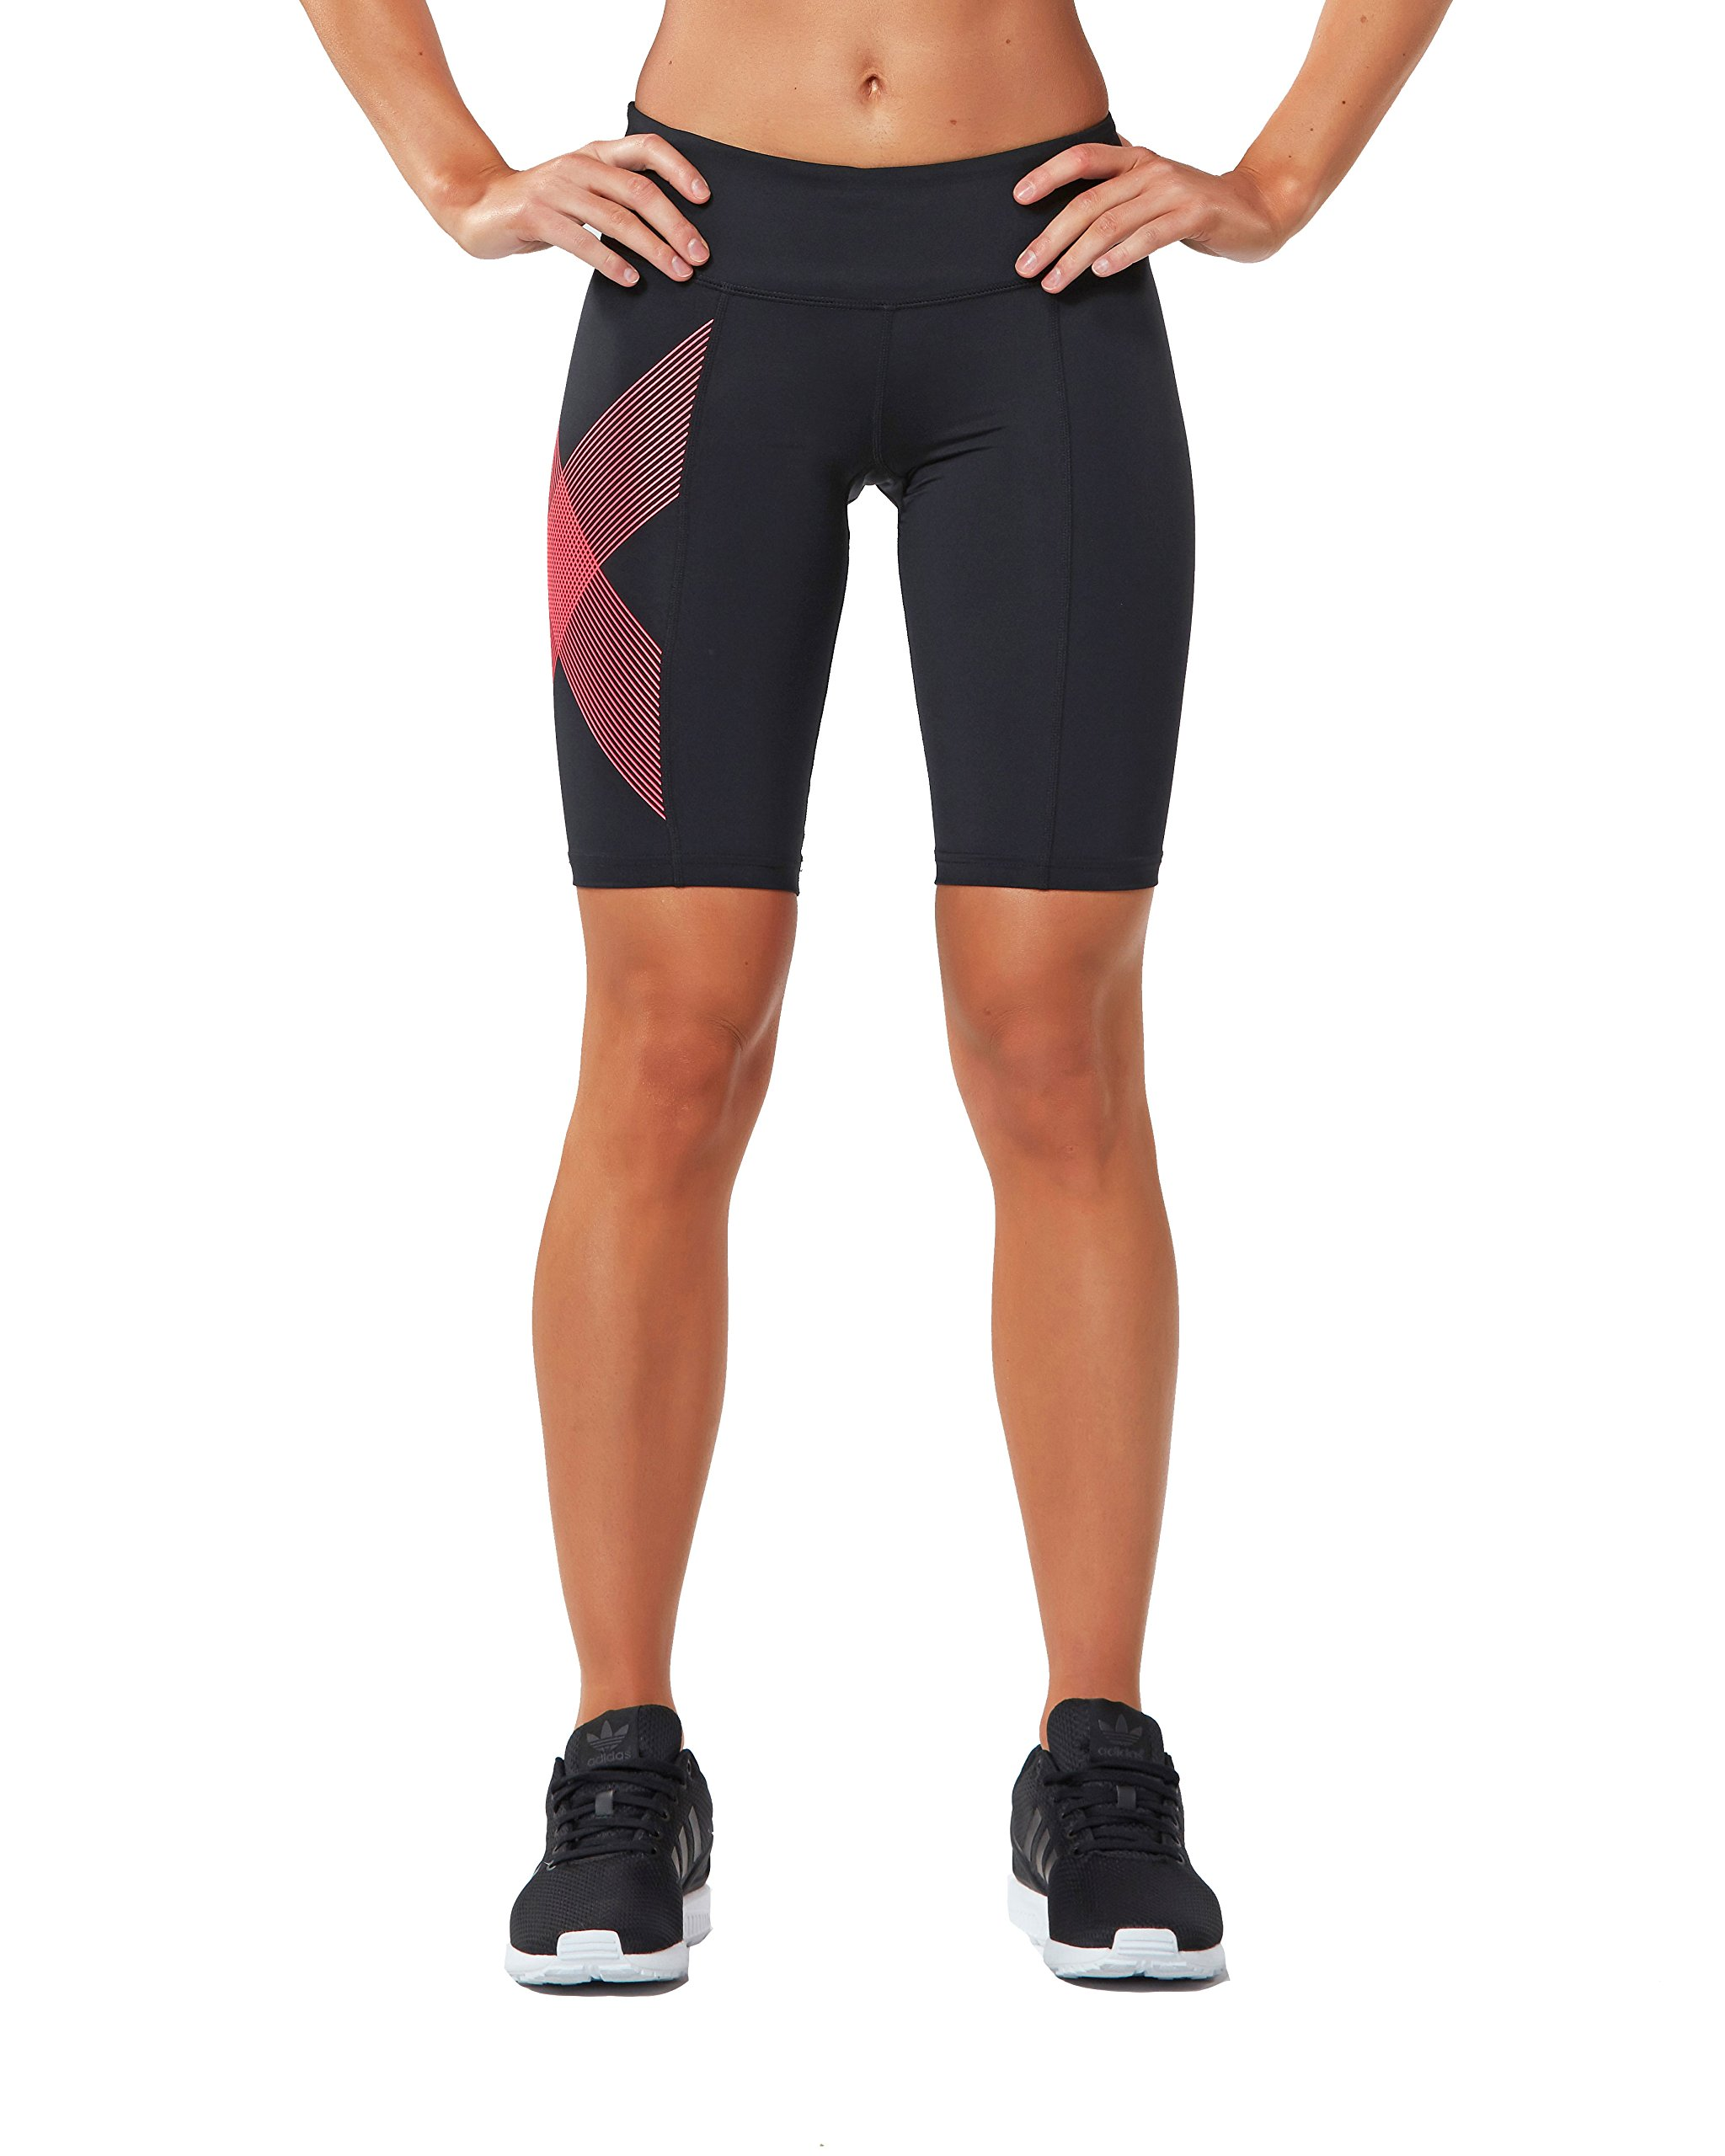 2XU Women's Mid-Rise Compression Shorts, Black/Striped Pink Glow, Small by 2XU (Image #2)